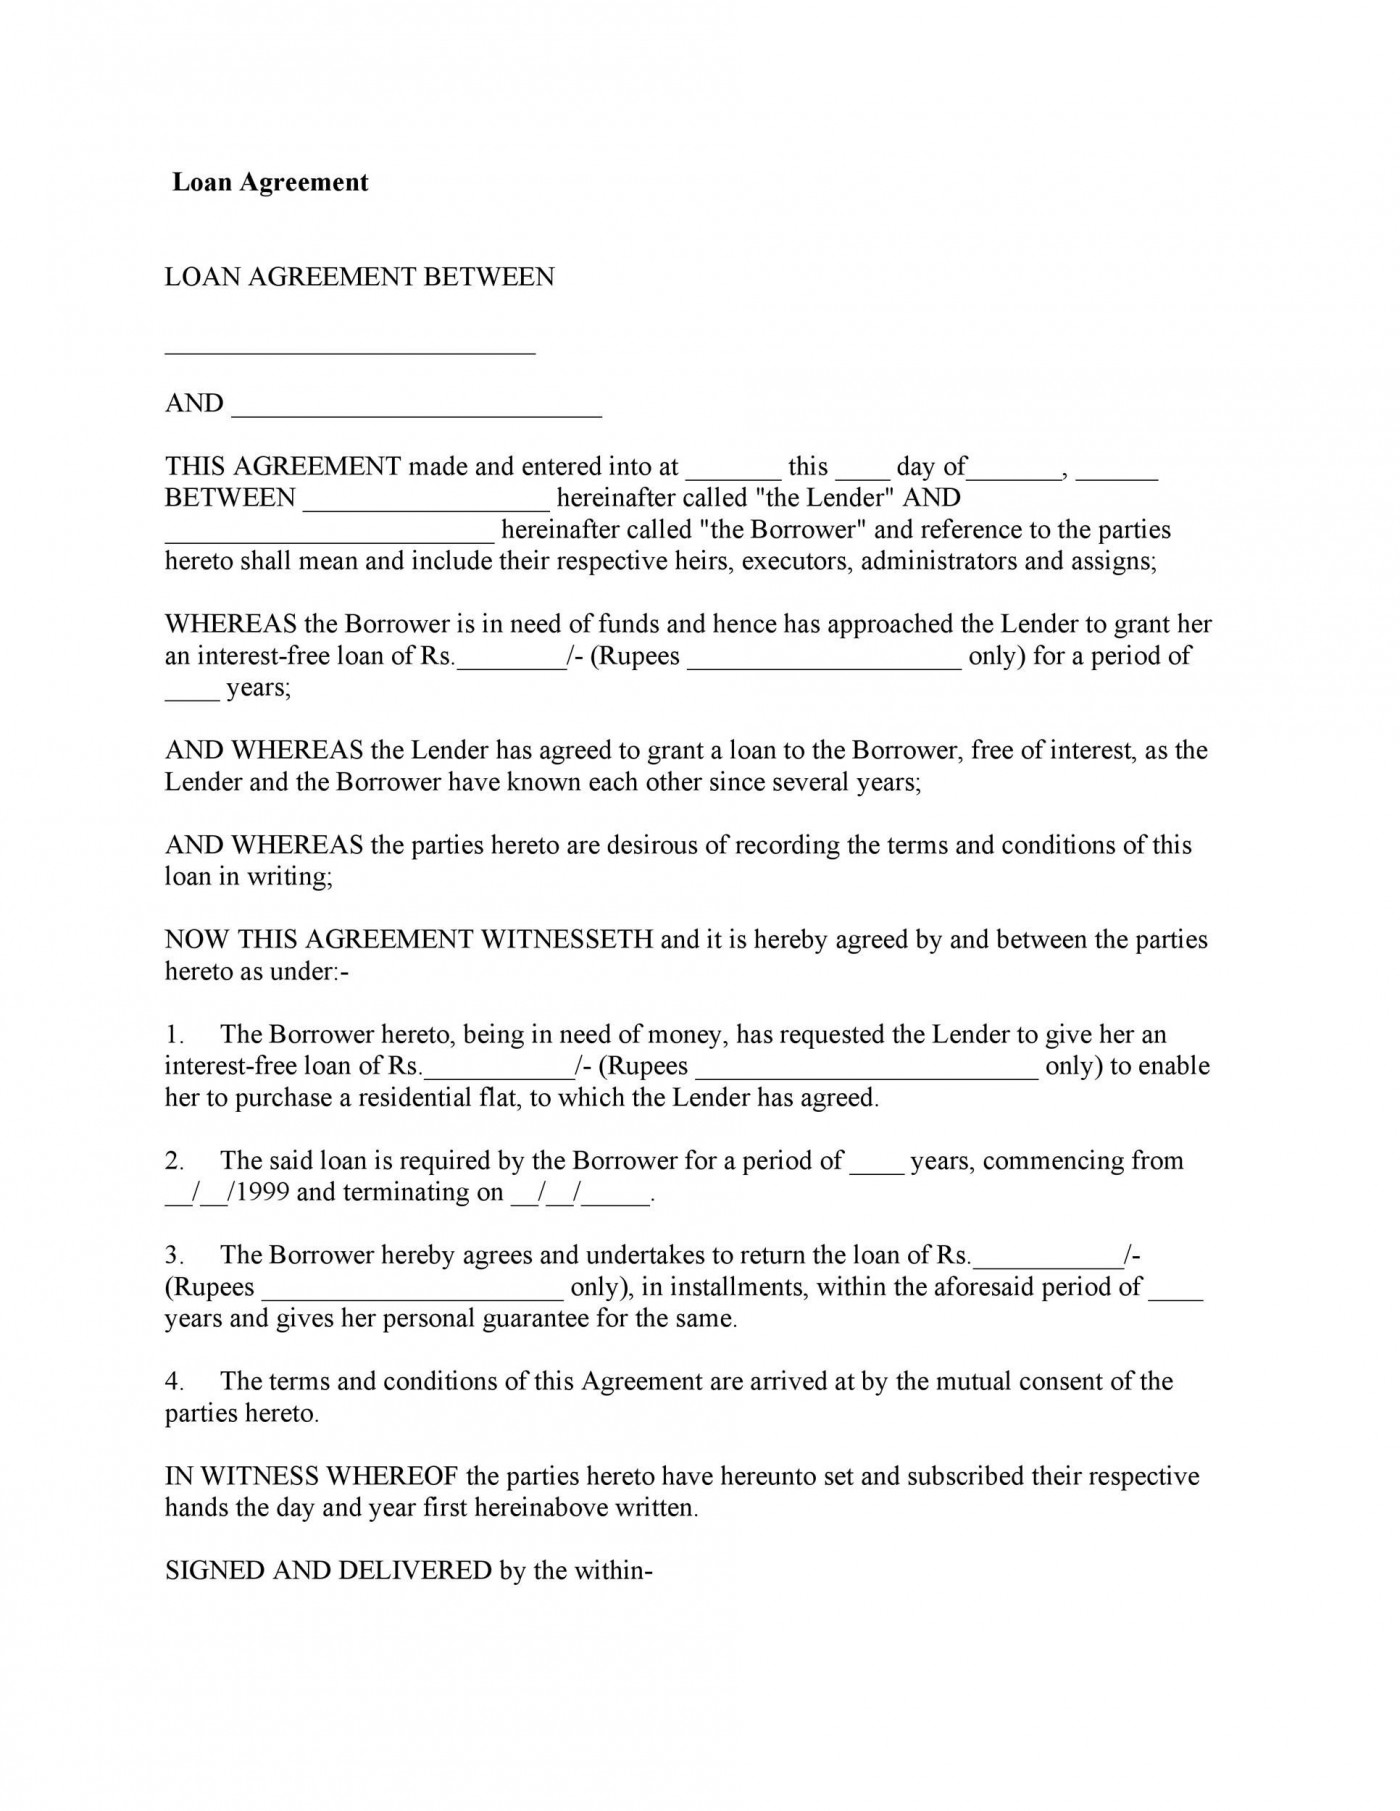 009 Fascinating Family Loan Agreement Template Image  Free Uk Friend And Simple Australia1400